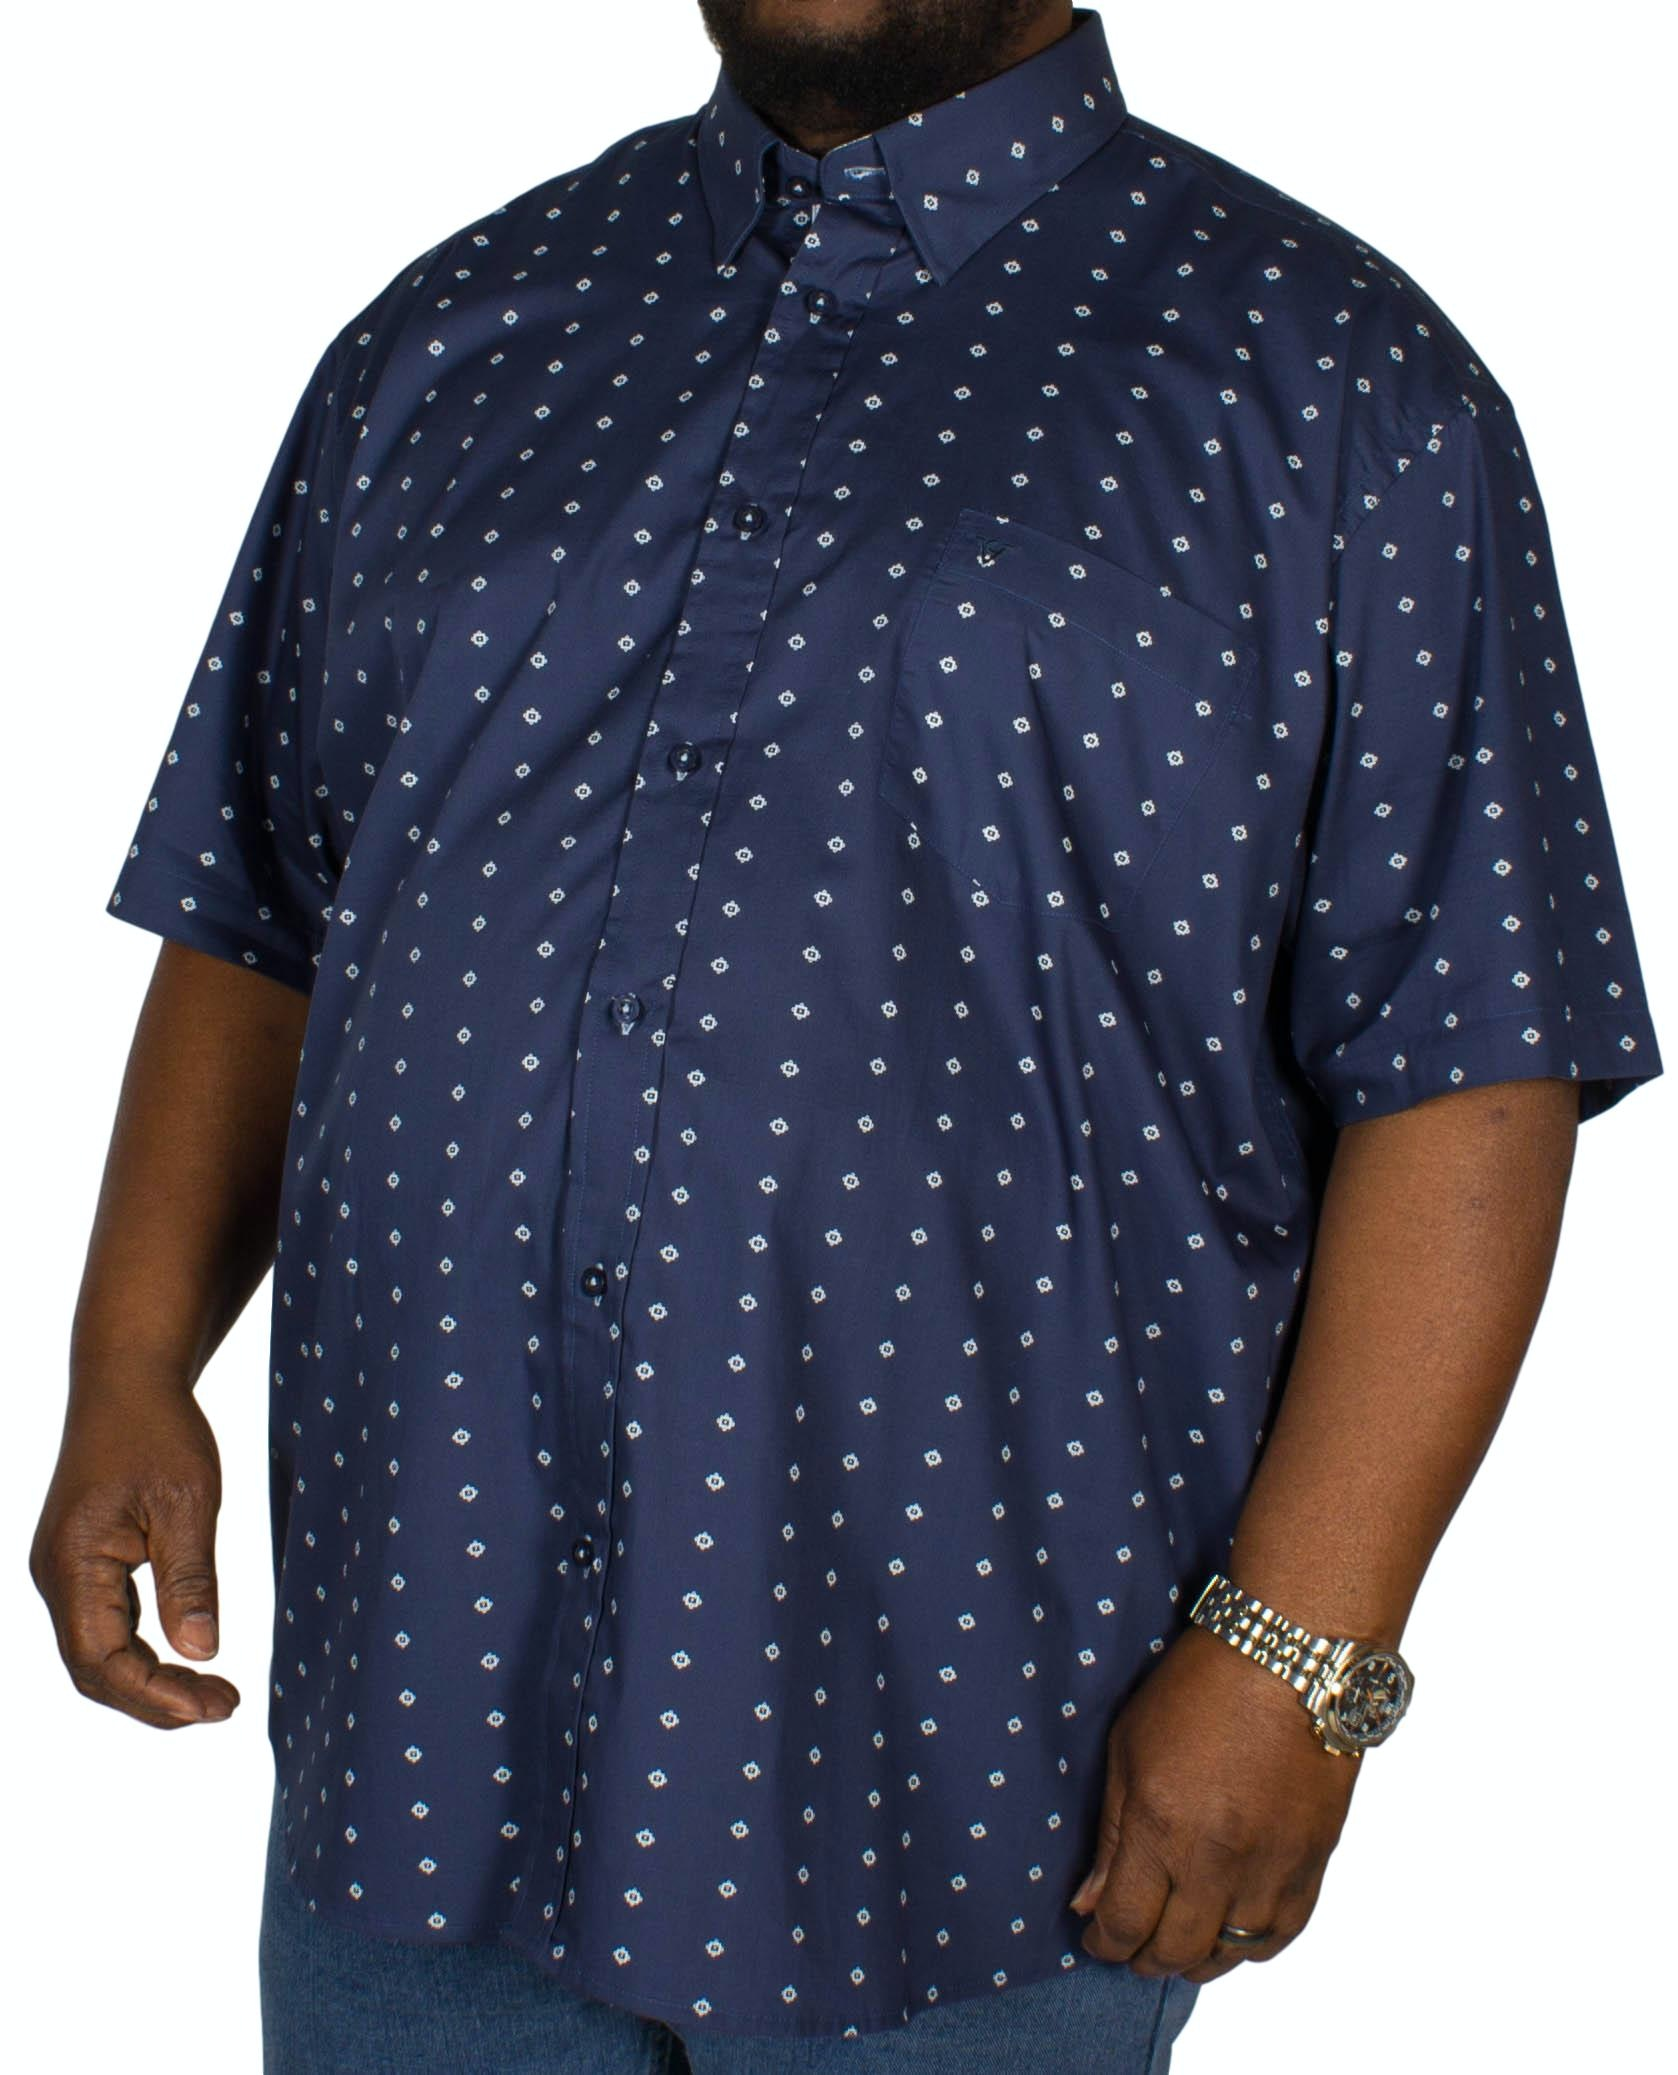 Cotton Valley All-over Print Short Sleeve Shirt Navy